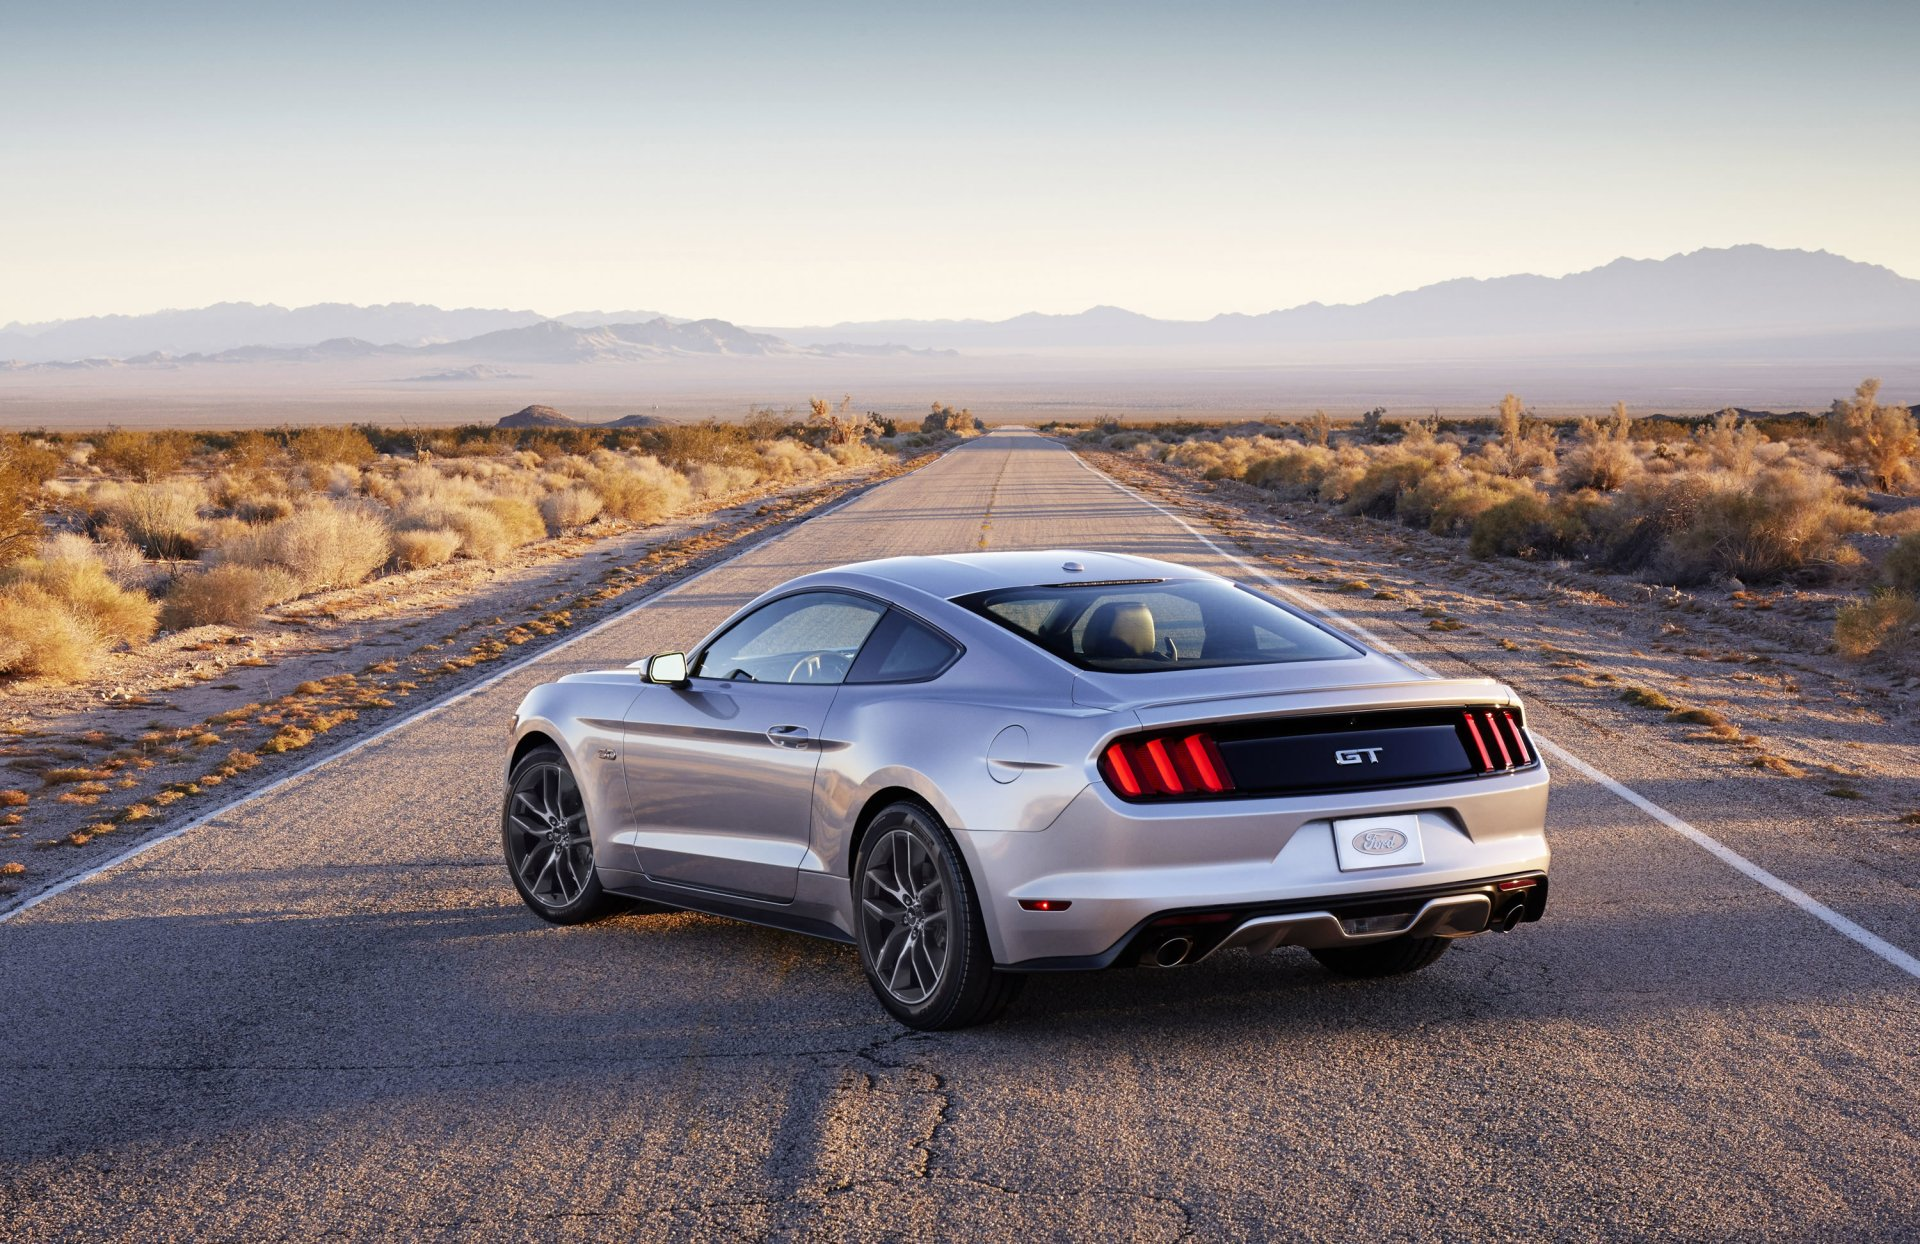 Vehicles - 2015 Ford Mustang GT  Desert Car Road Ford Ford Mustang Silver Car Wallpaper